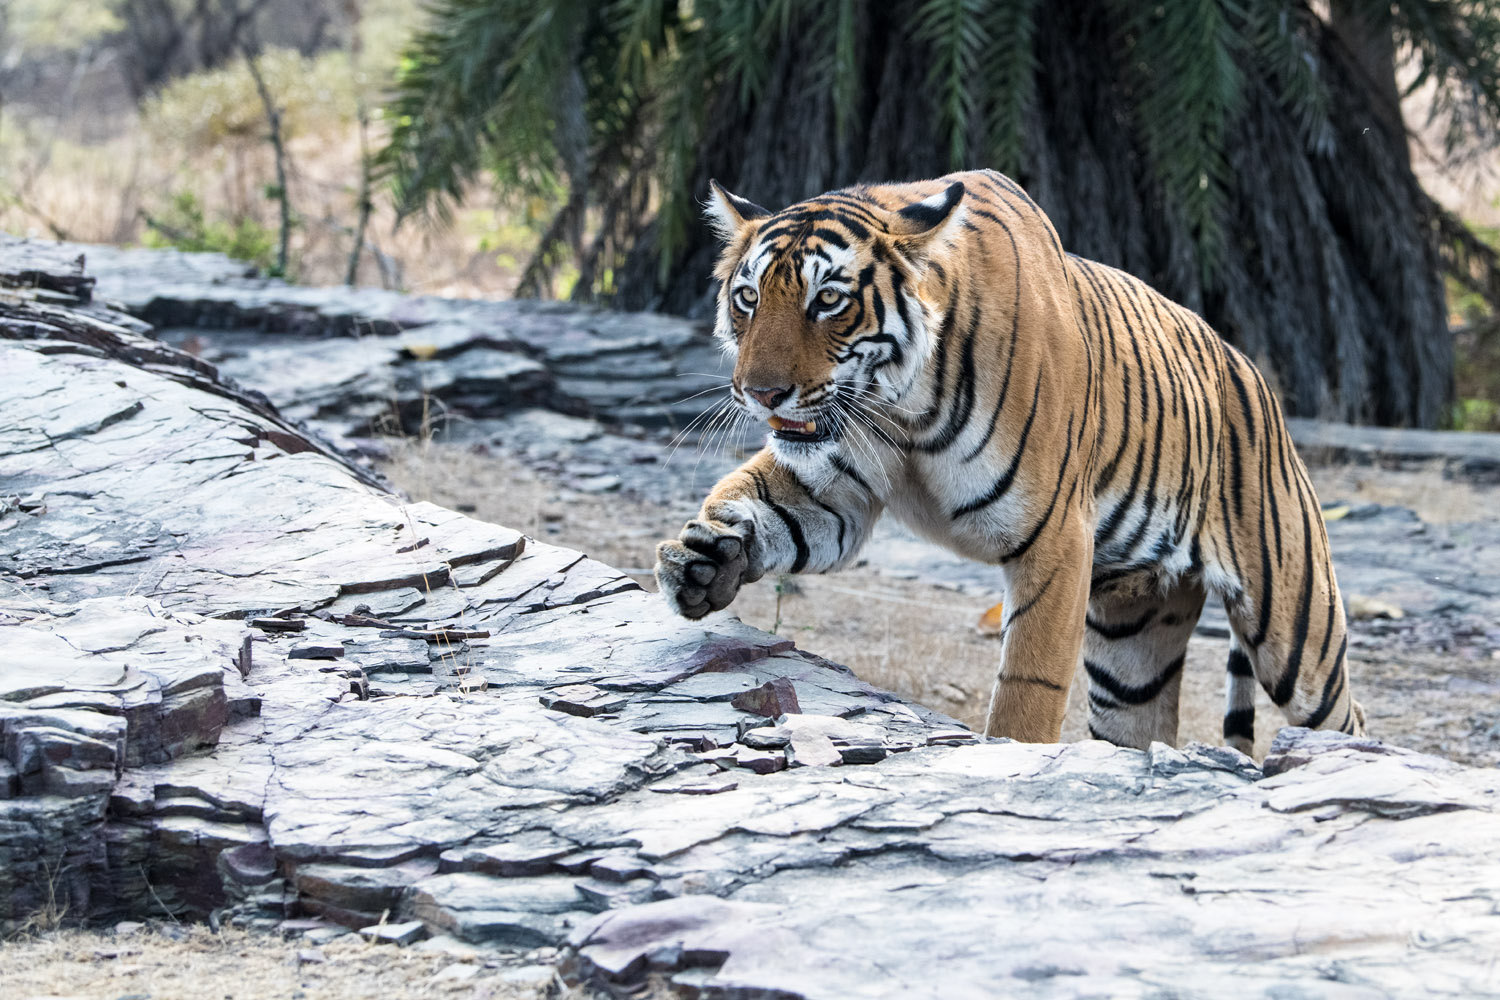 Bengal tigress walking across rocks, Ranthambhore National Park, Rajasthan, India